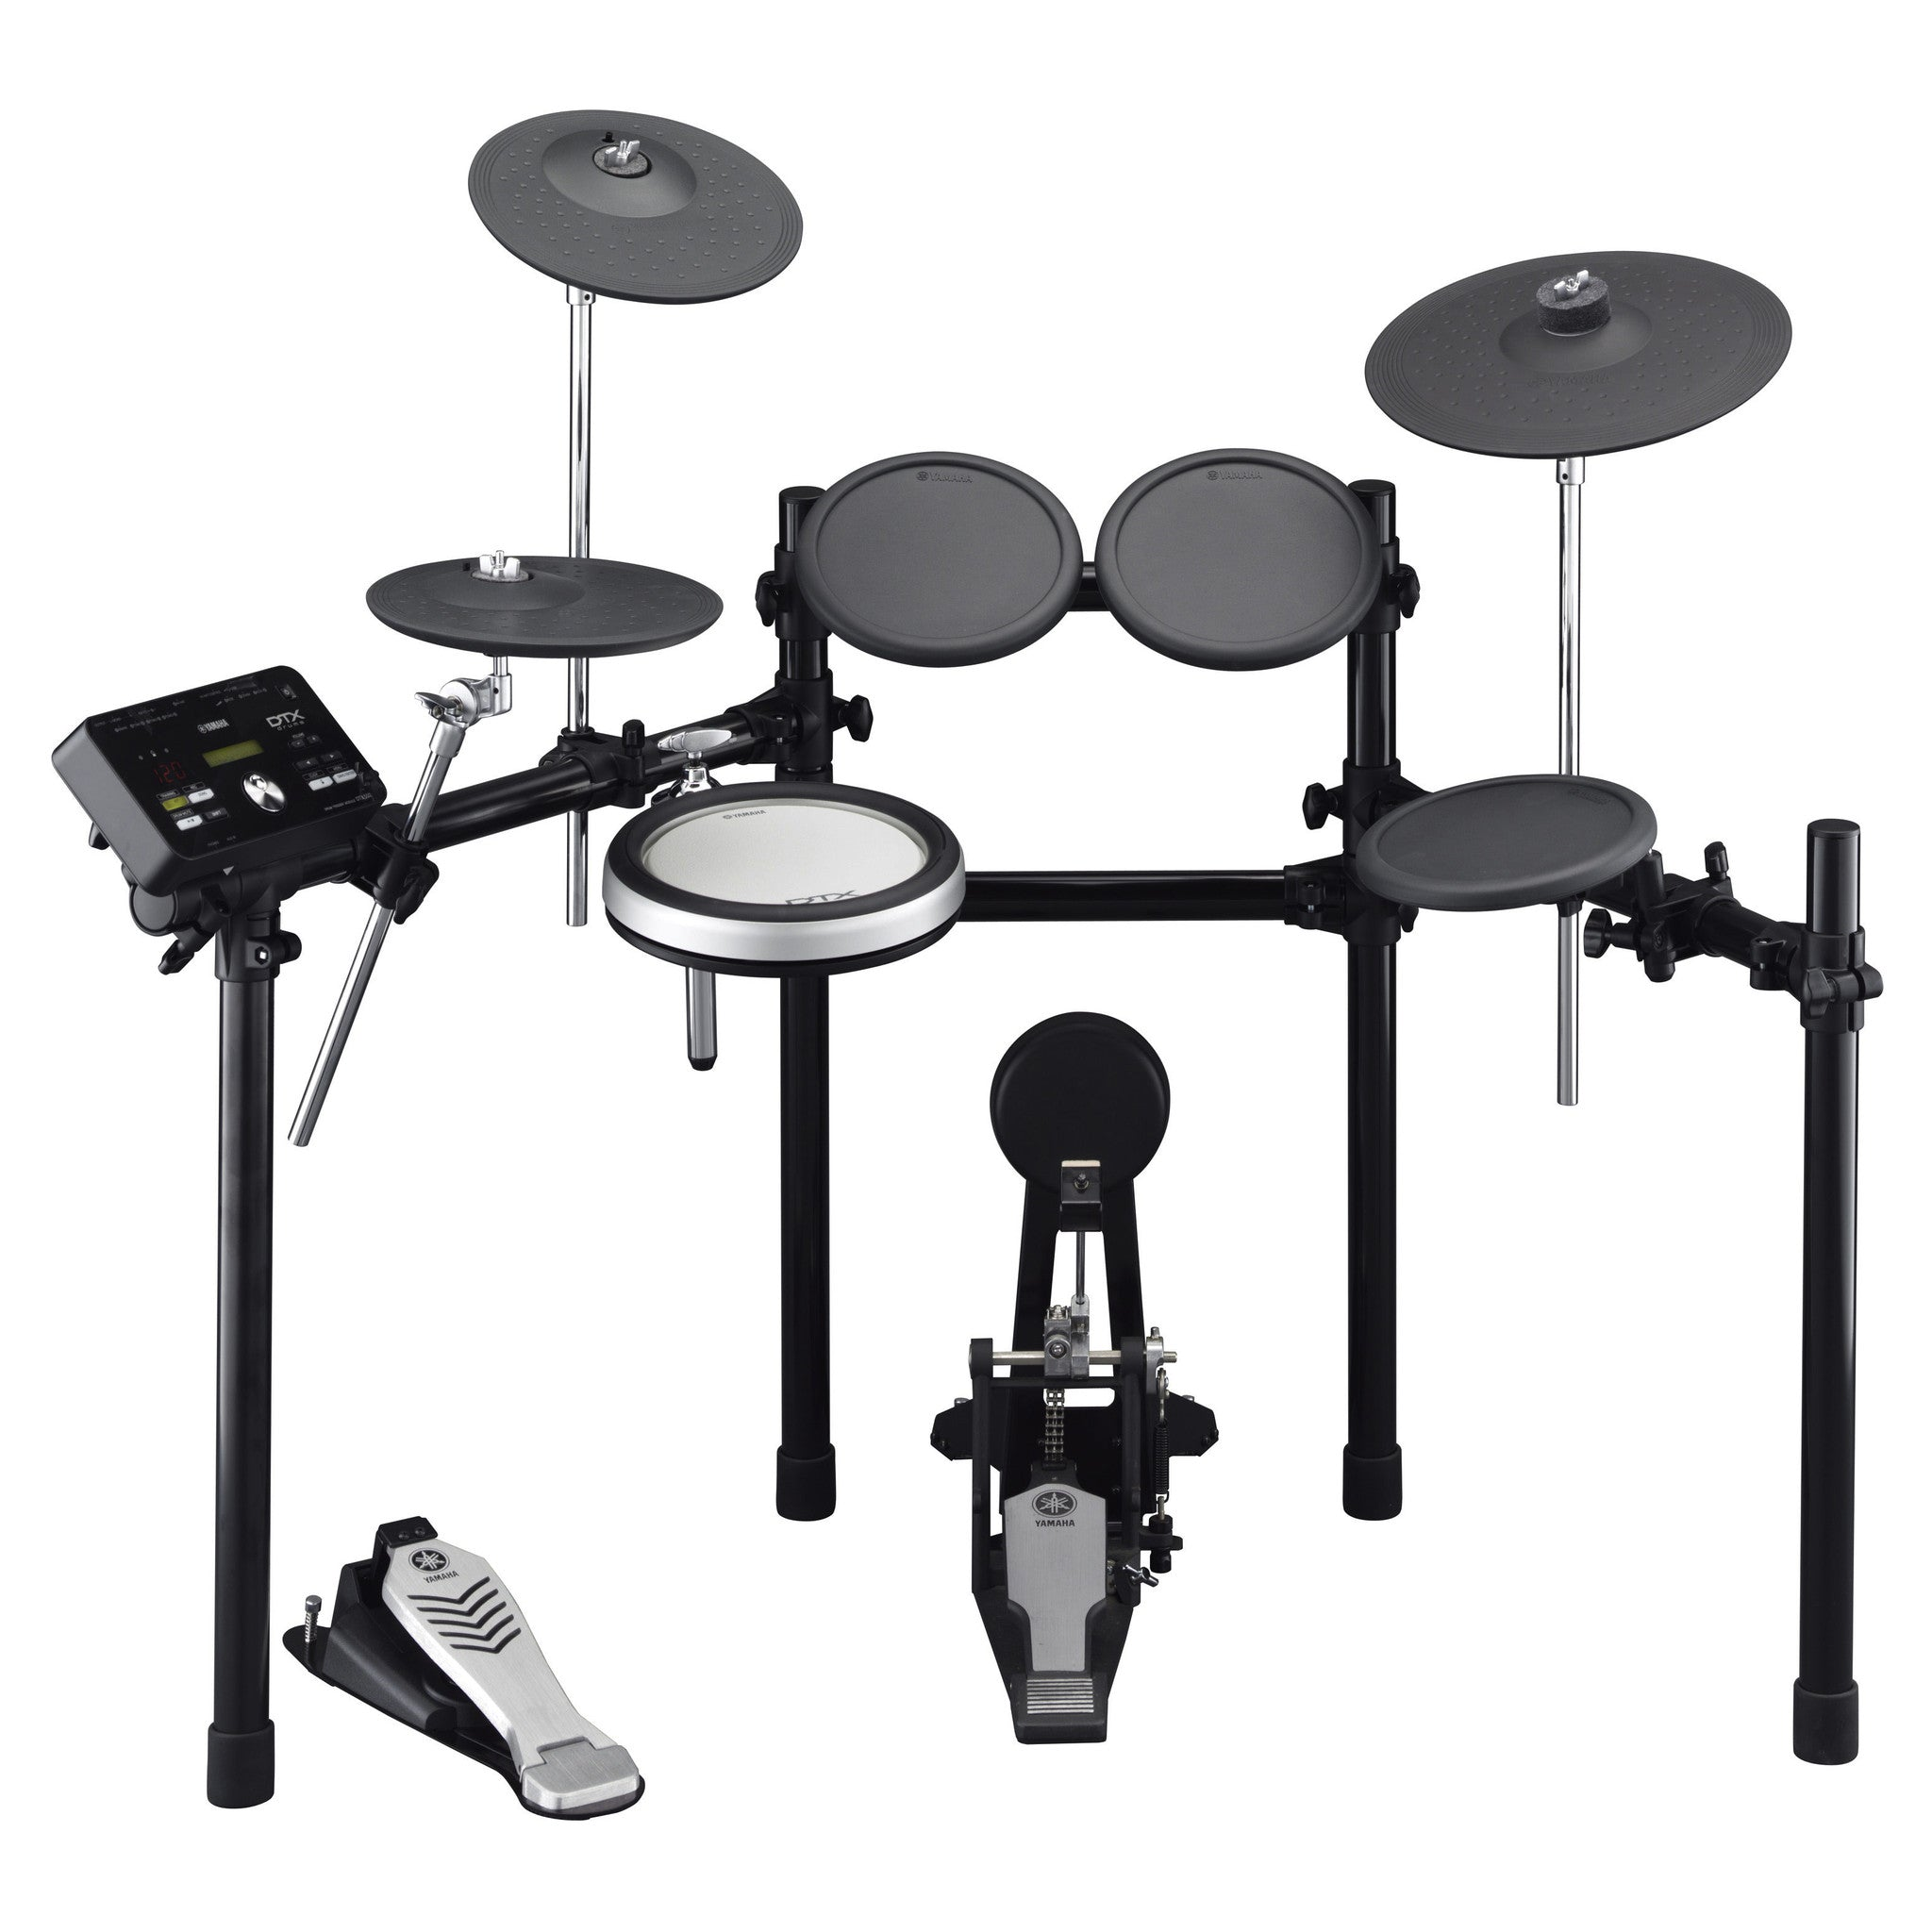 yamaha dtx. yamaha dtx522k electronic drum kit | music experience shop online south africa dtx